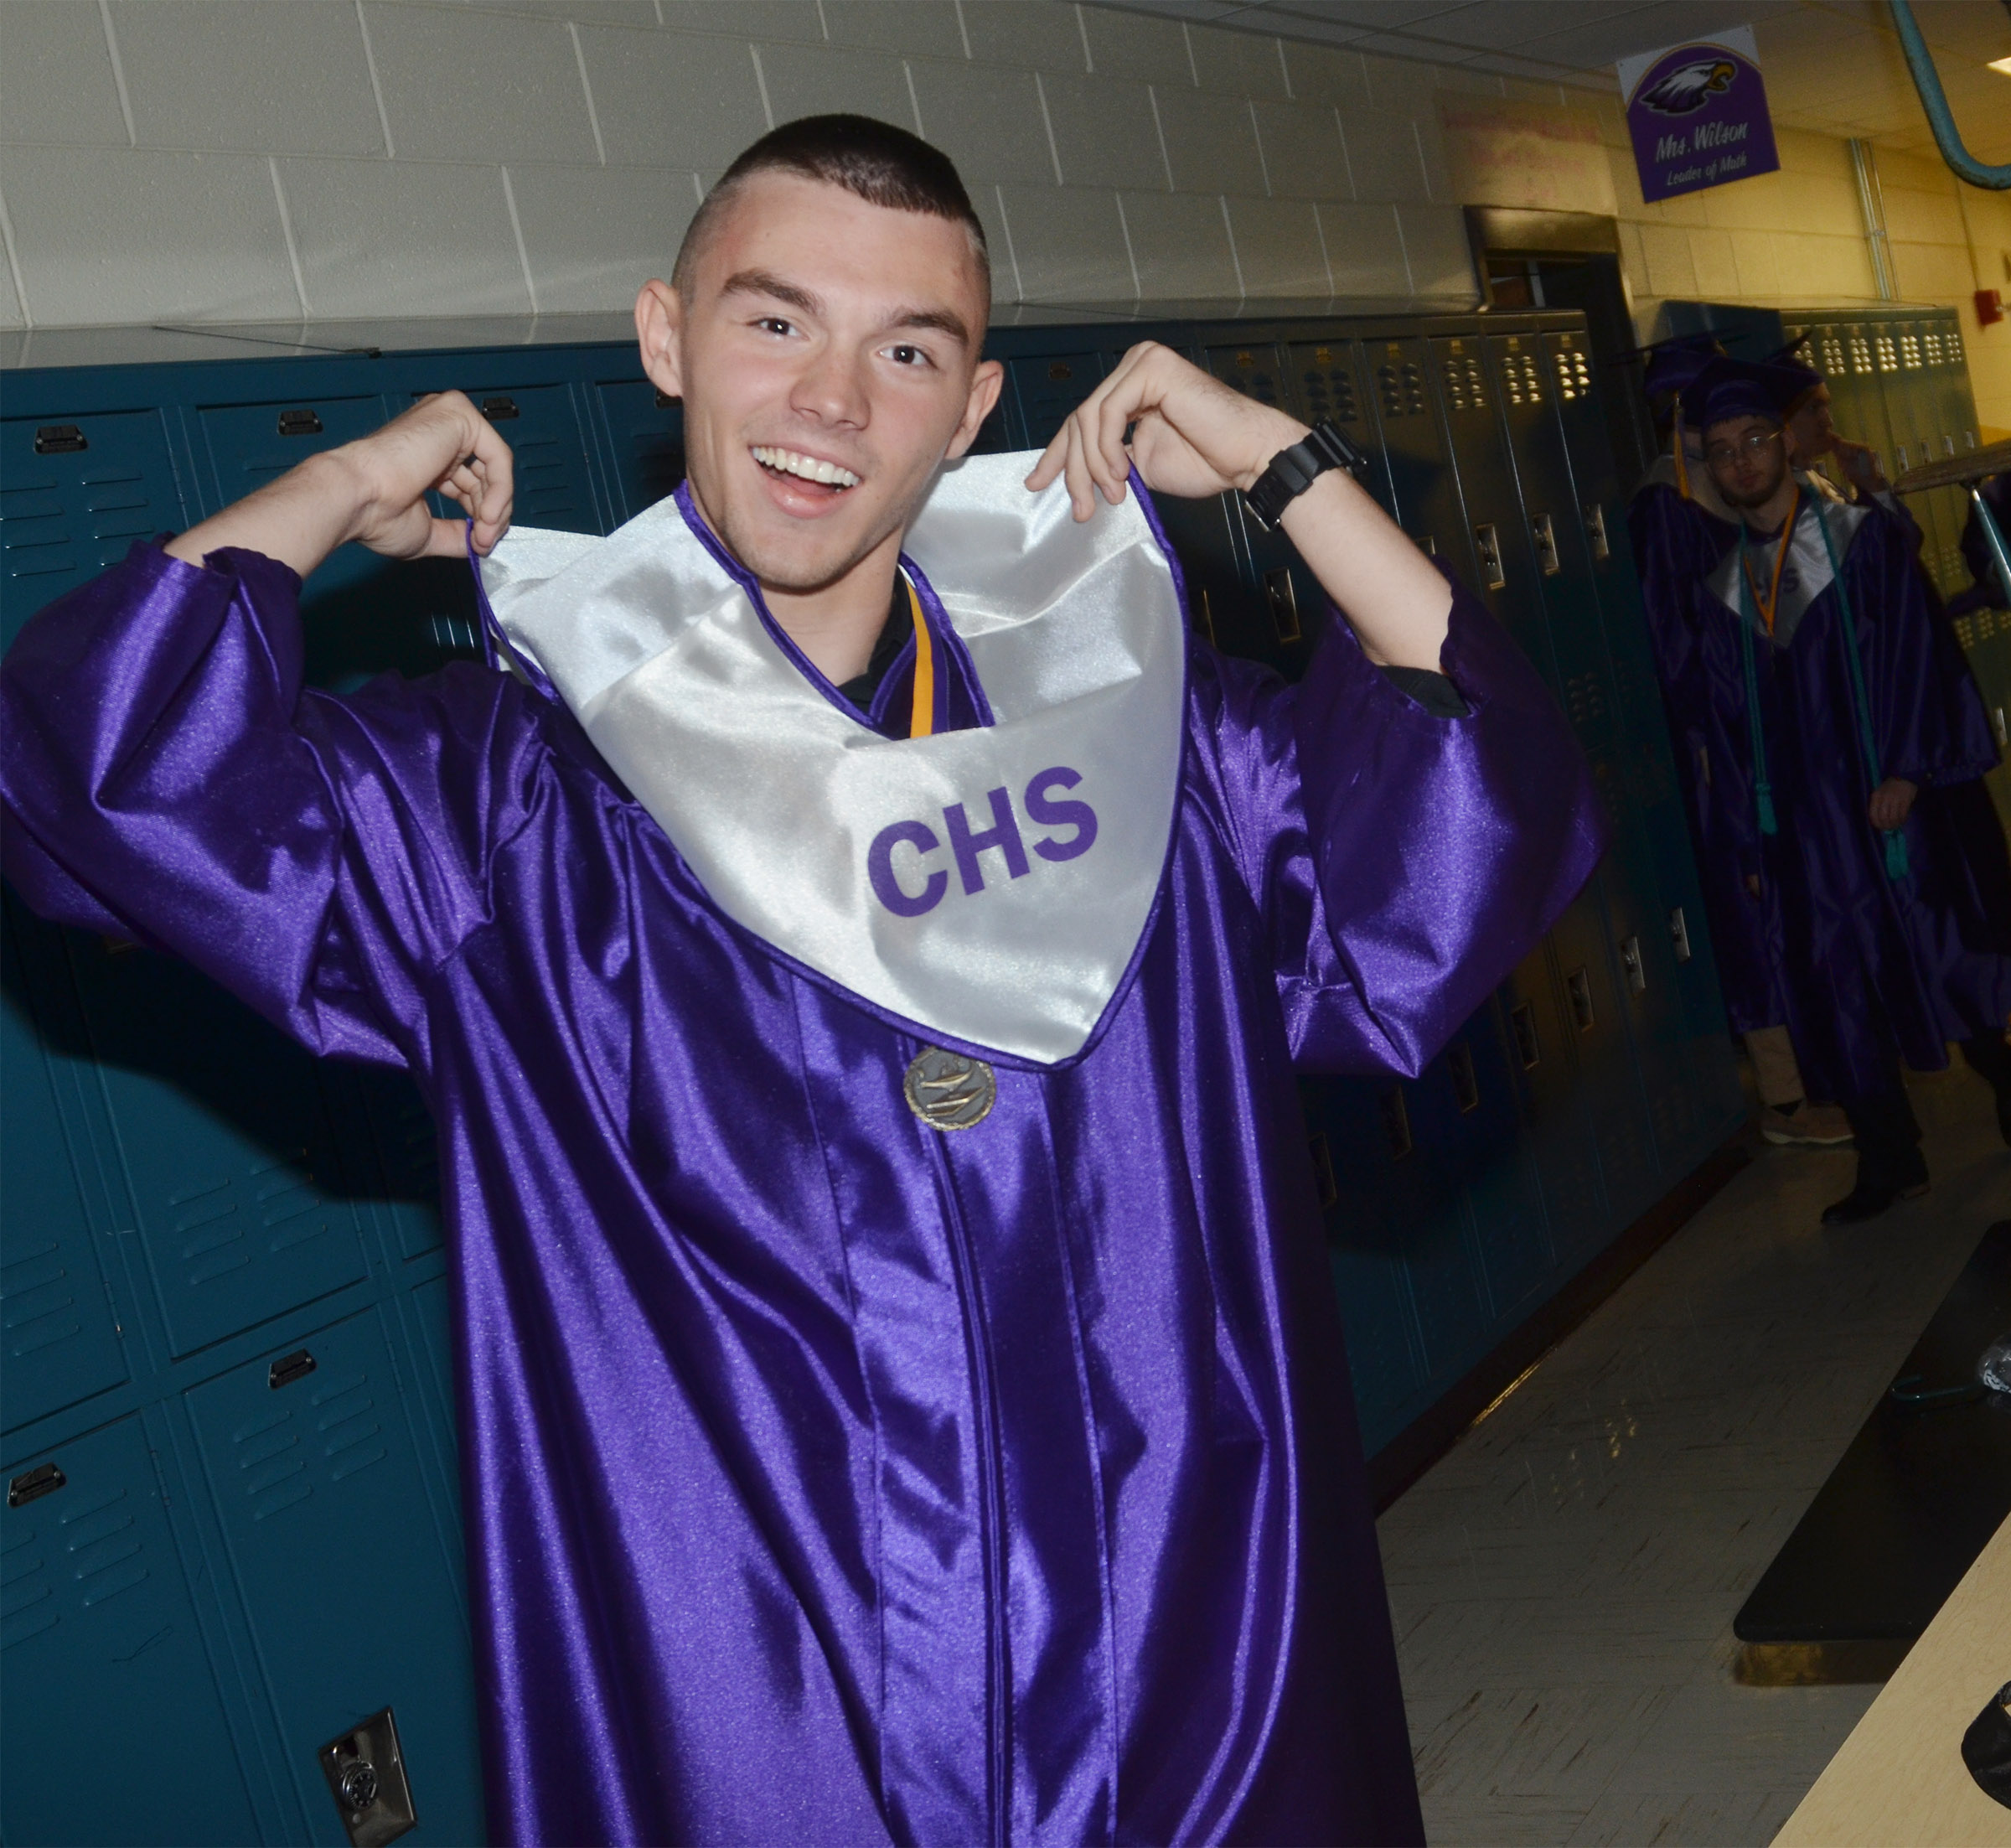 CHS senior Jordan Pratt adjusts his sash before graduation.